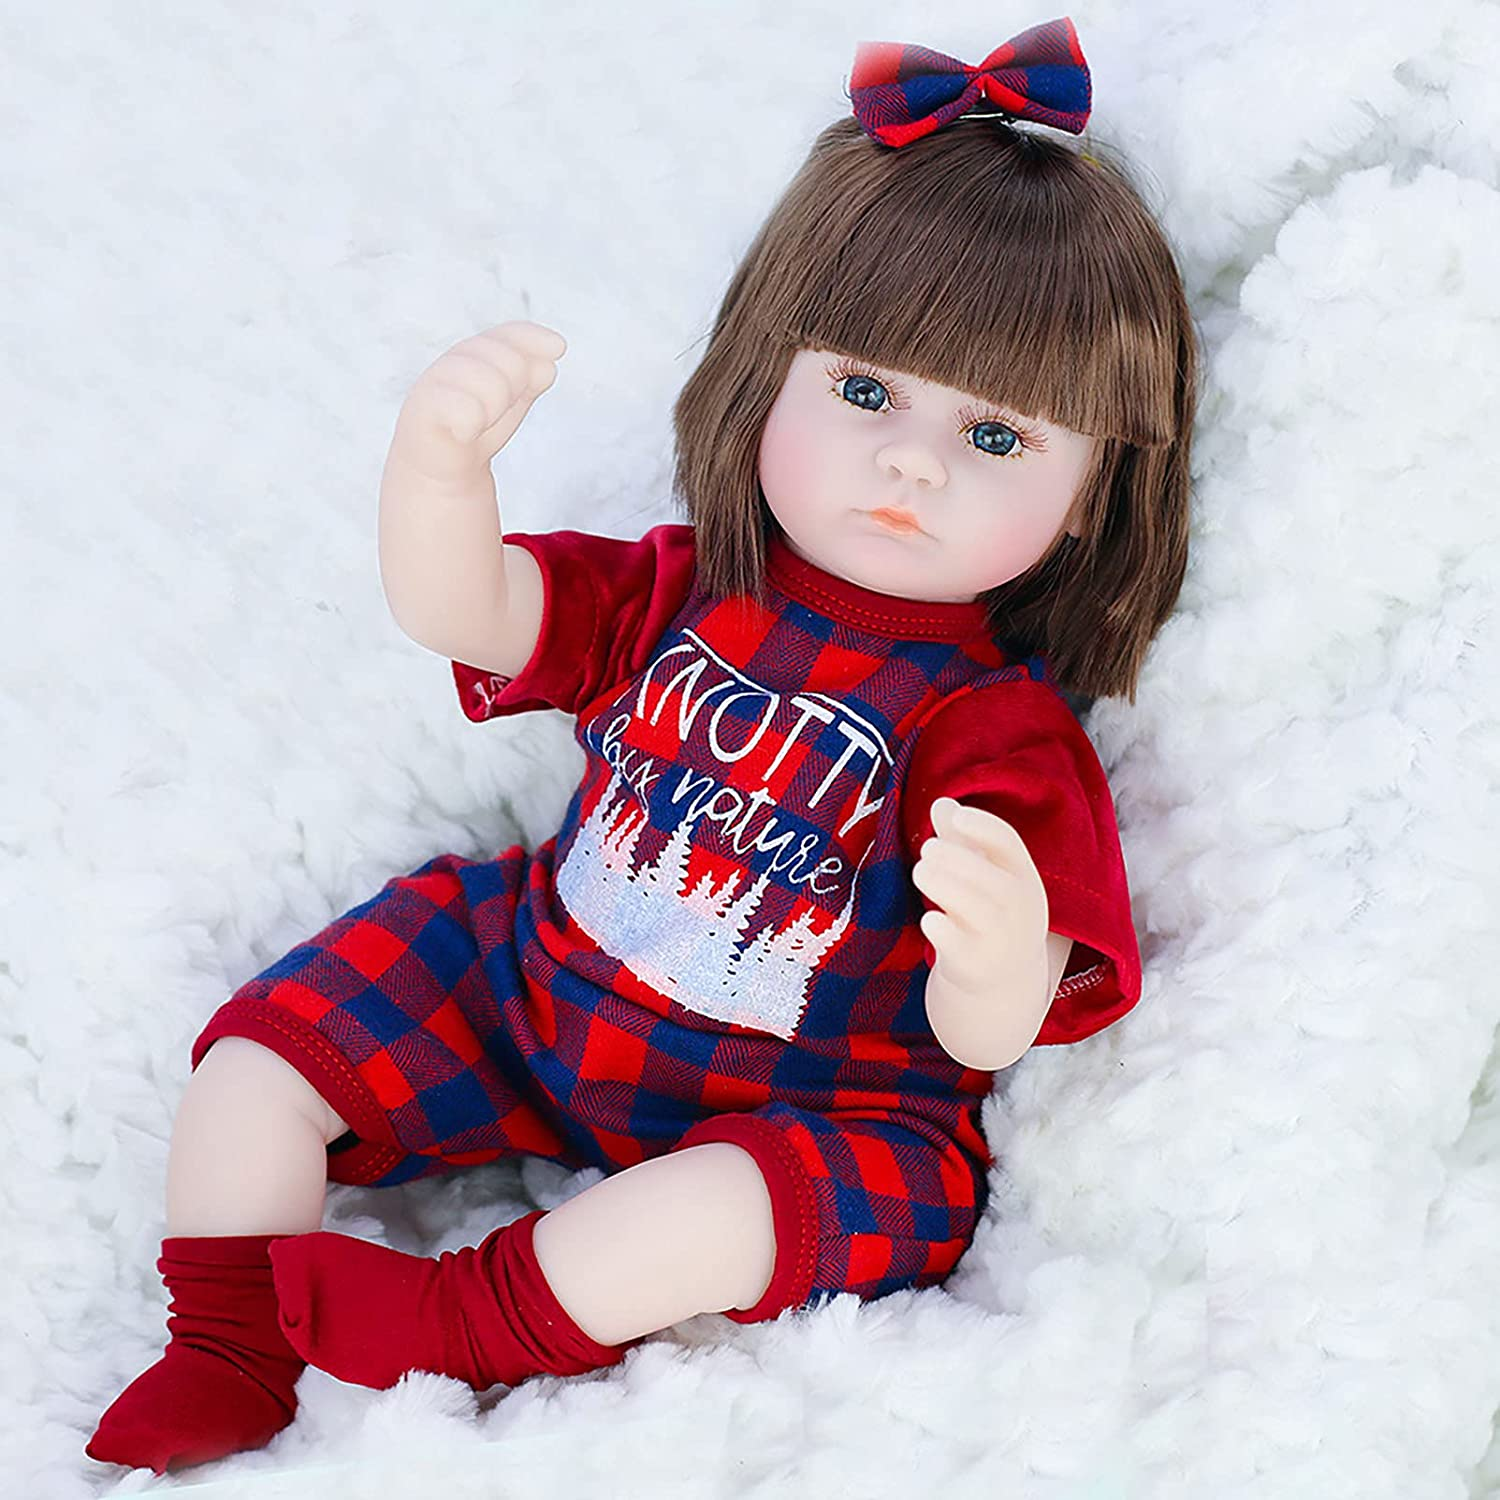 YQY Realistic Baby Doll Lifelike Quantity limited Girl Be Toddler Weighted Virginia Beach Mall